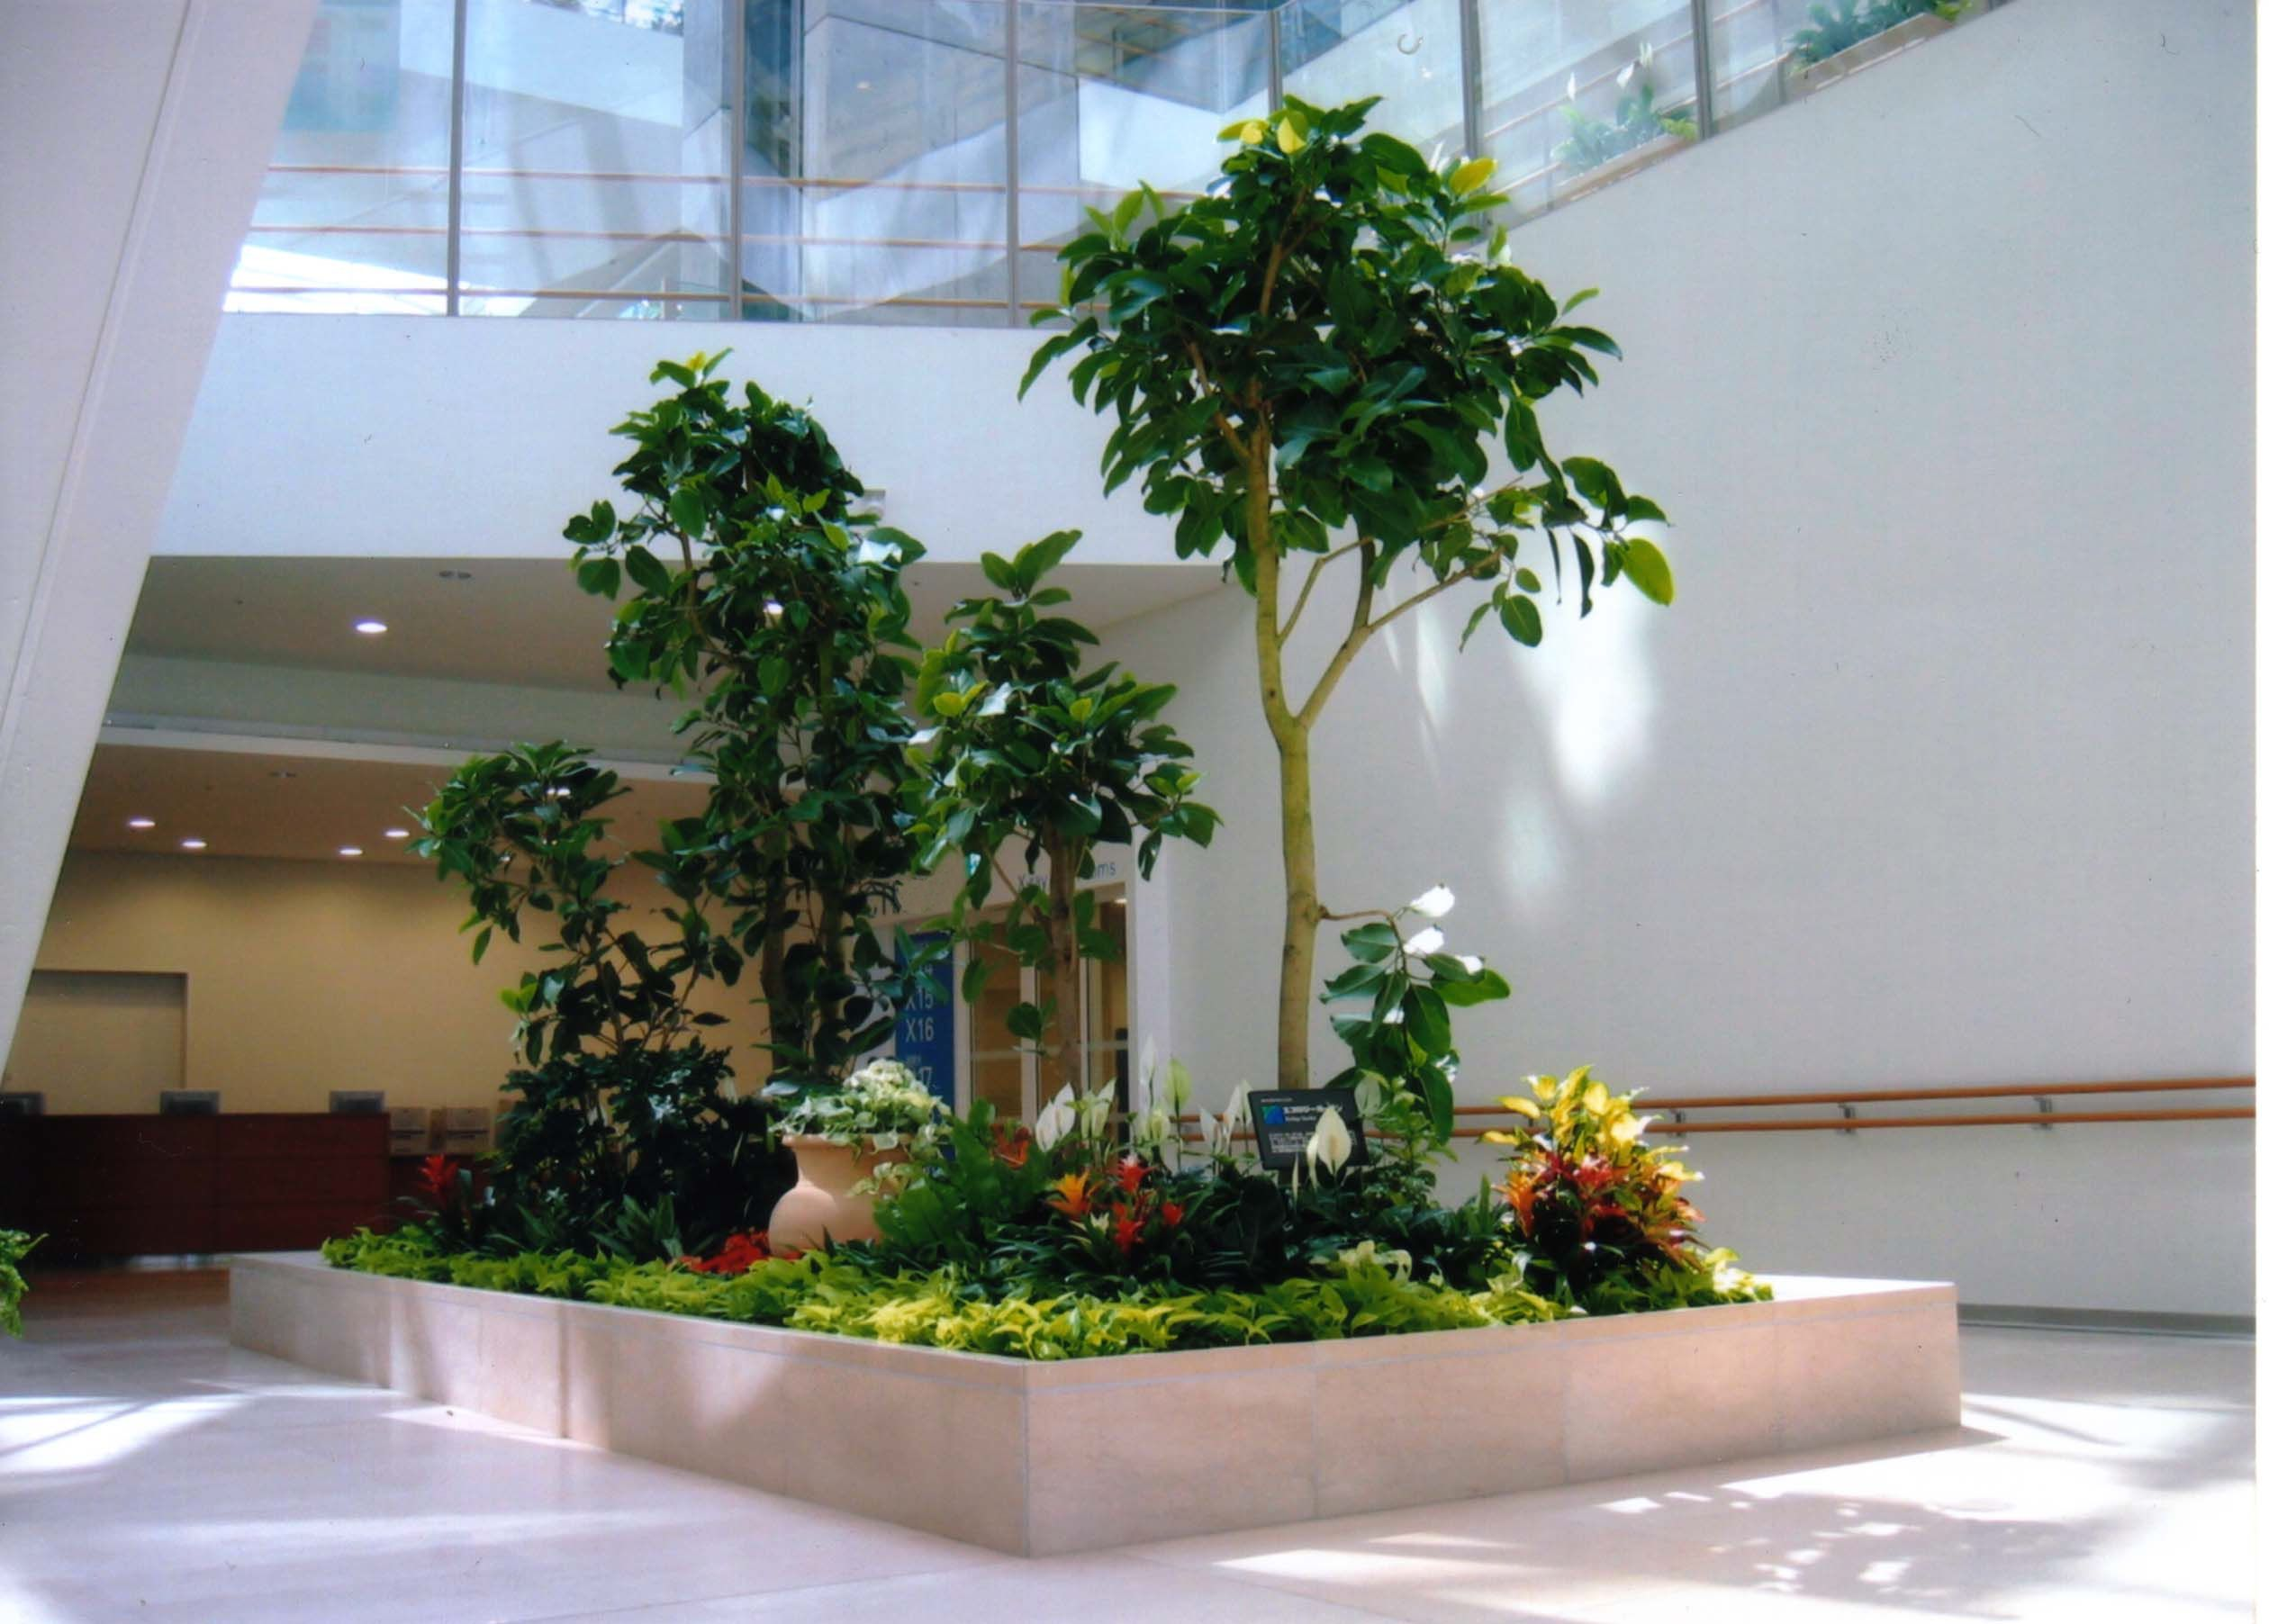 Interior Planter Waltham MA Best Plants for Offices